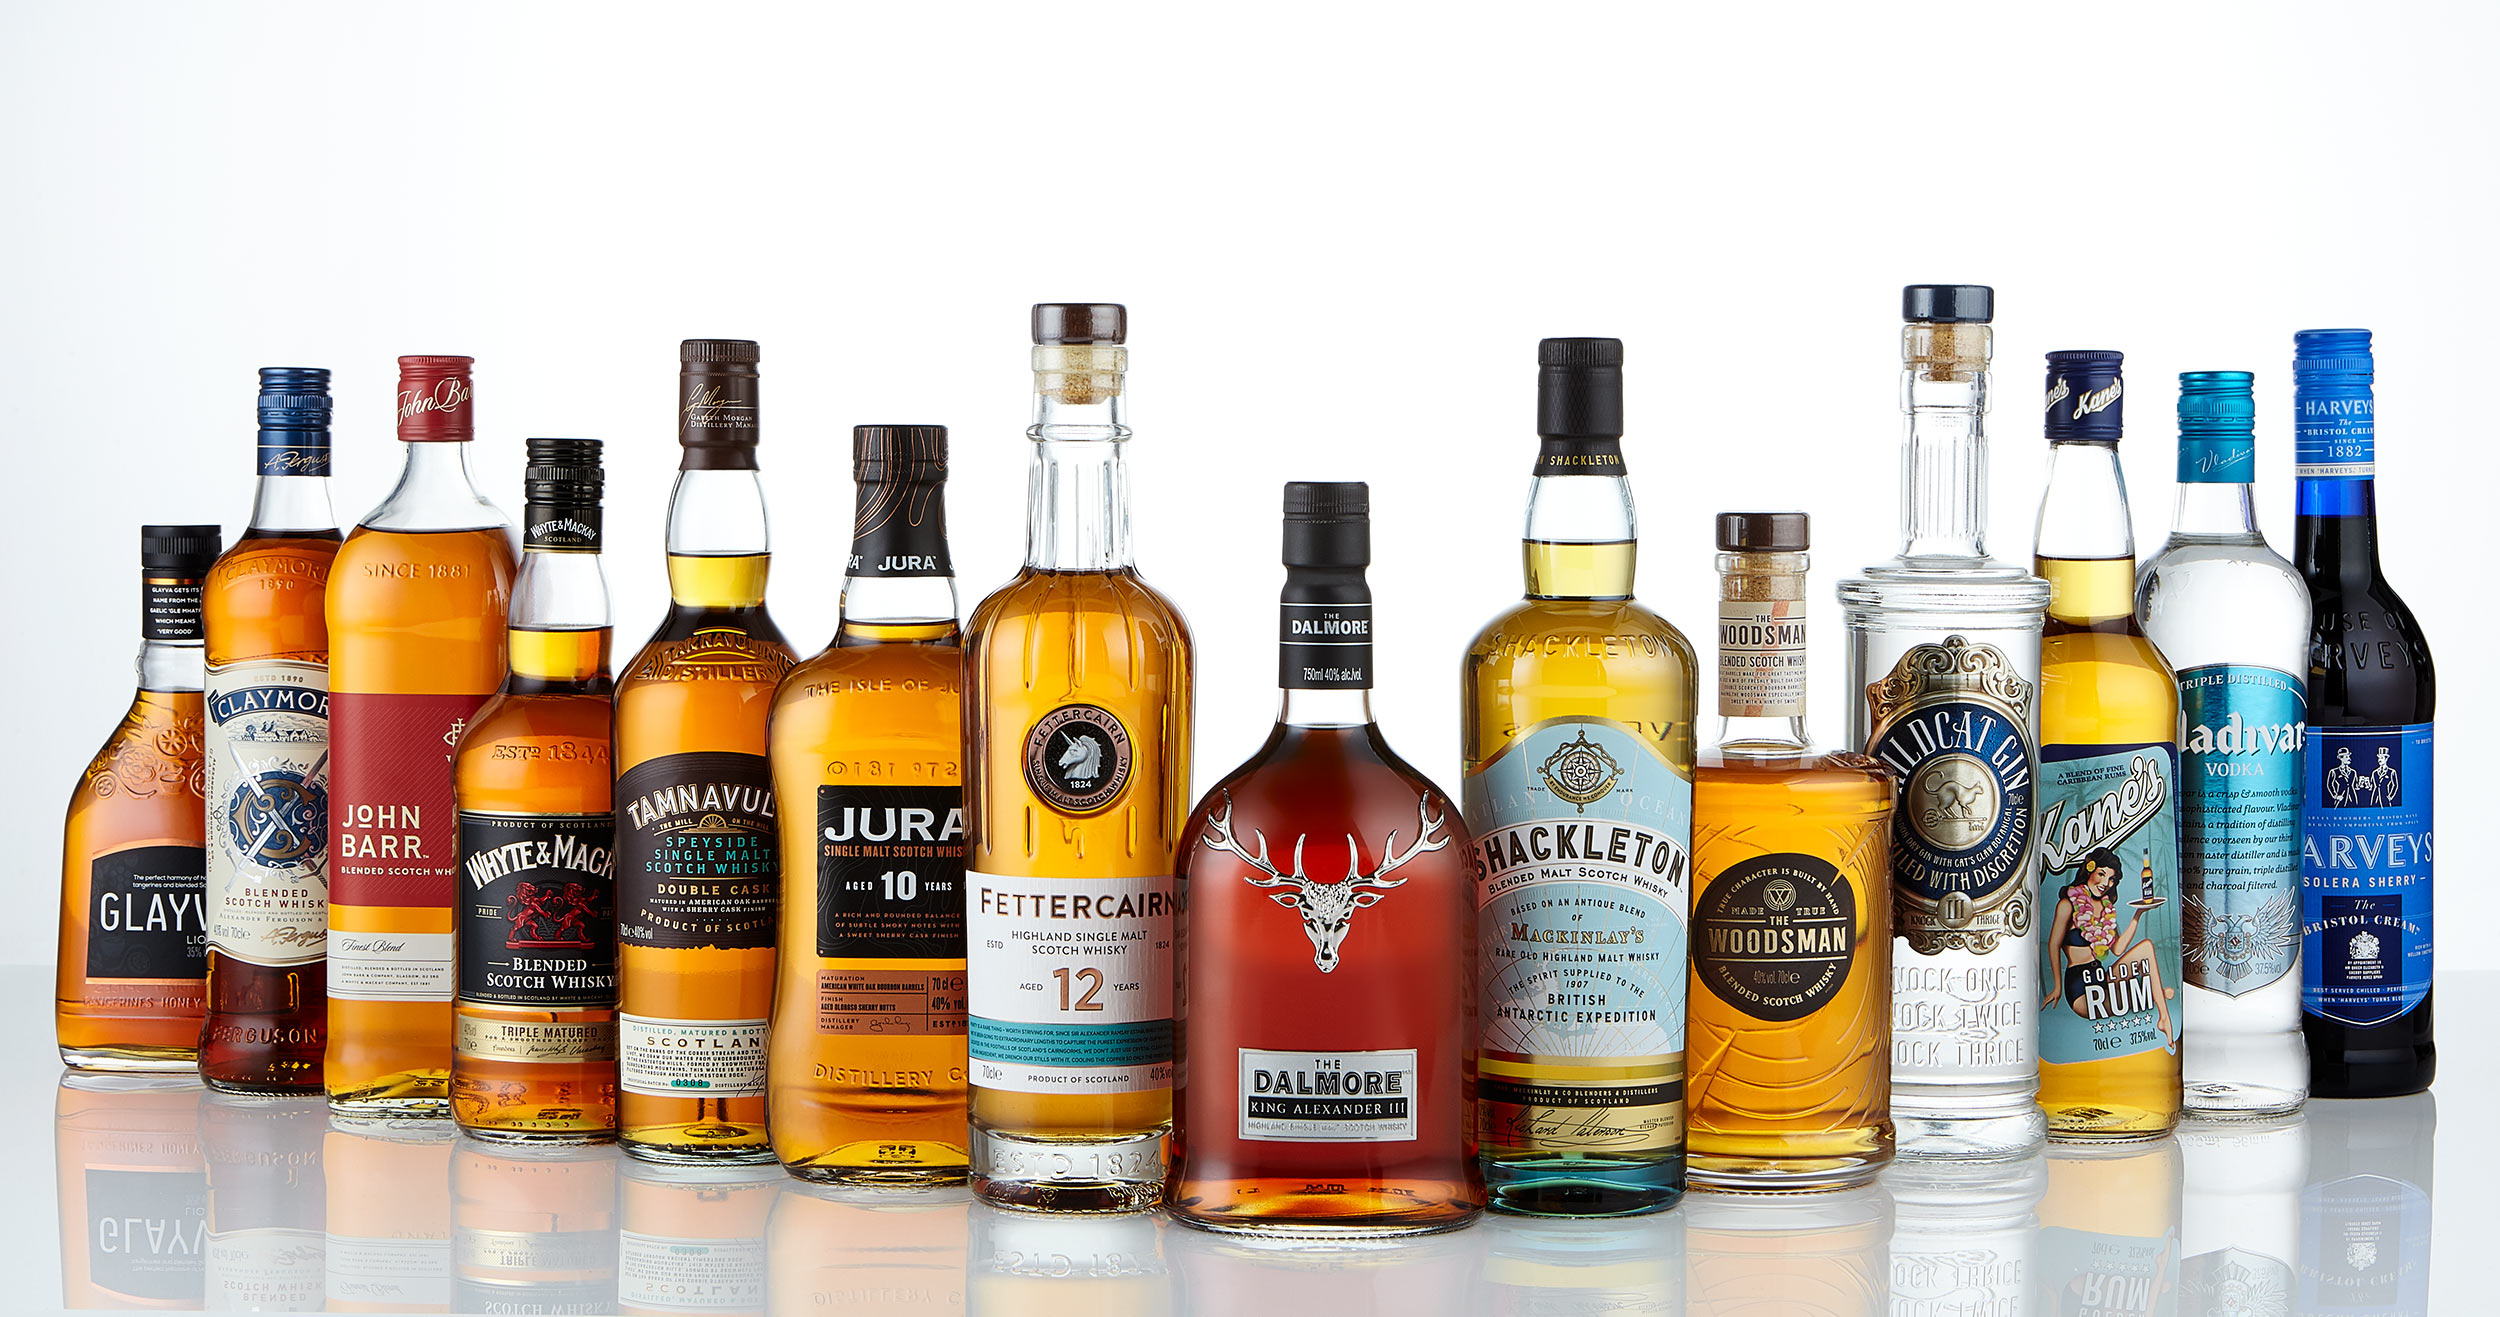 Whyte and Mackay product range